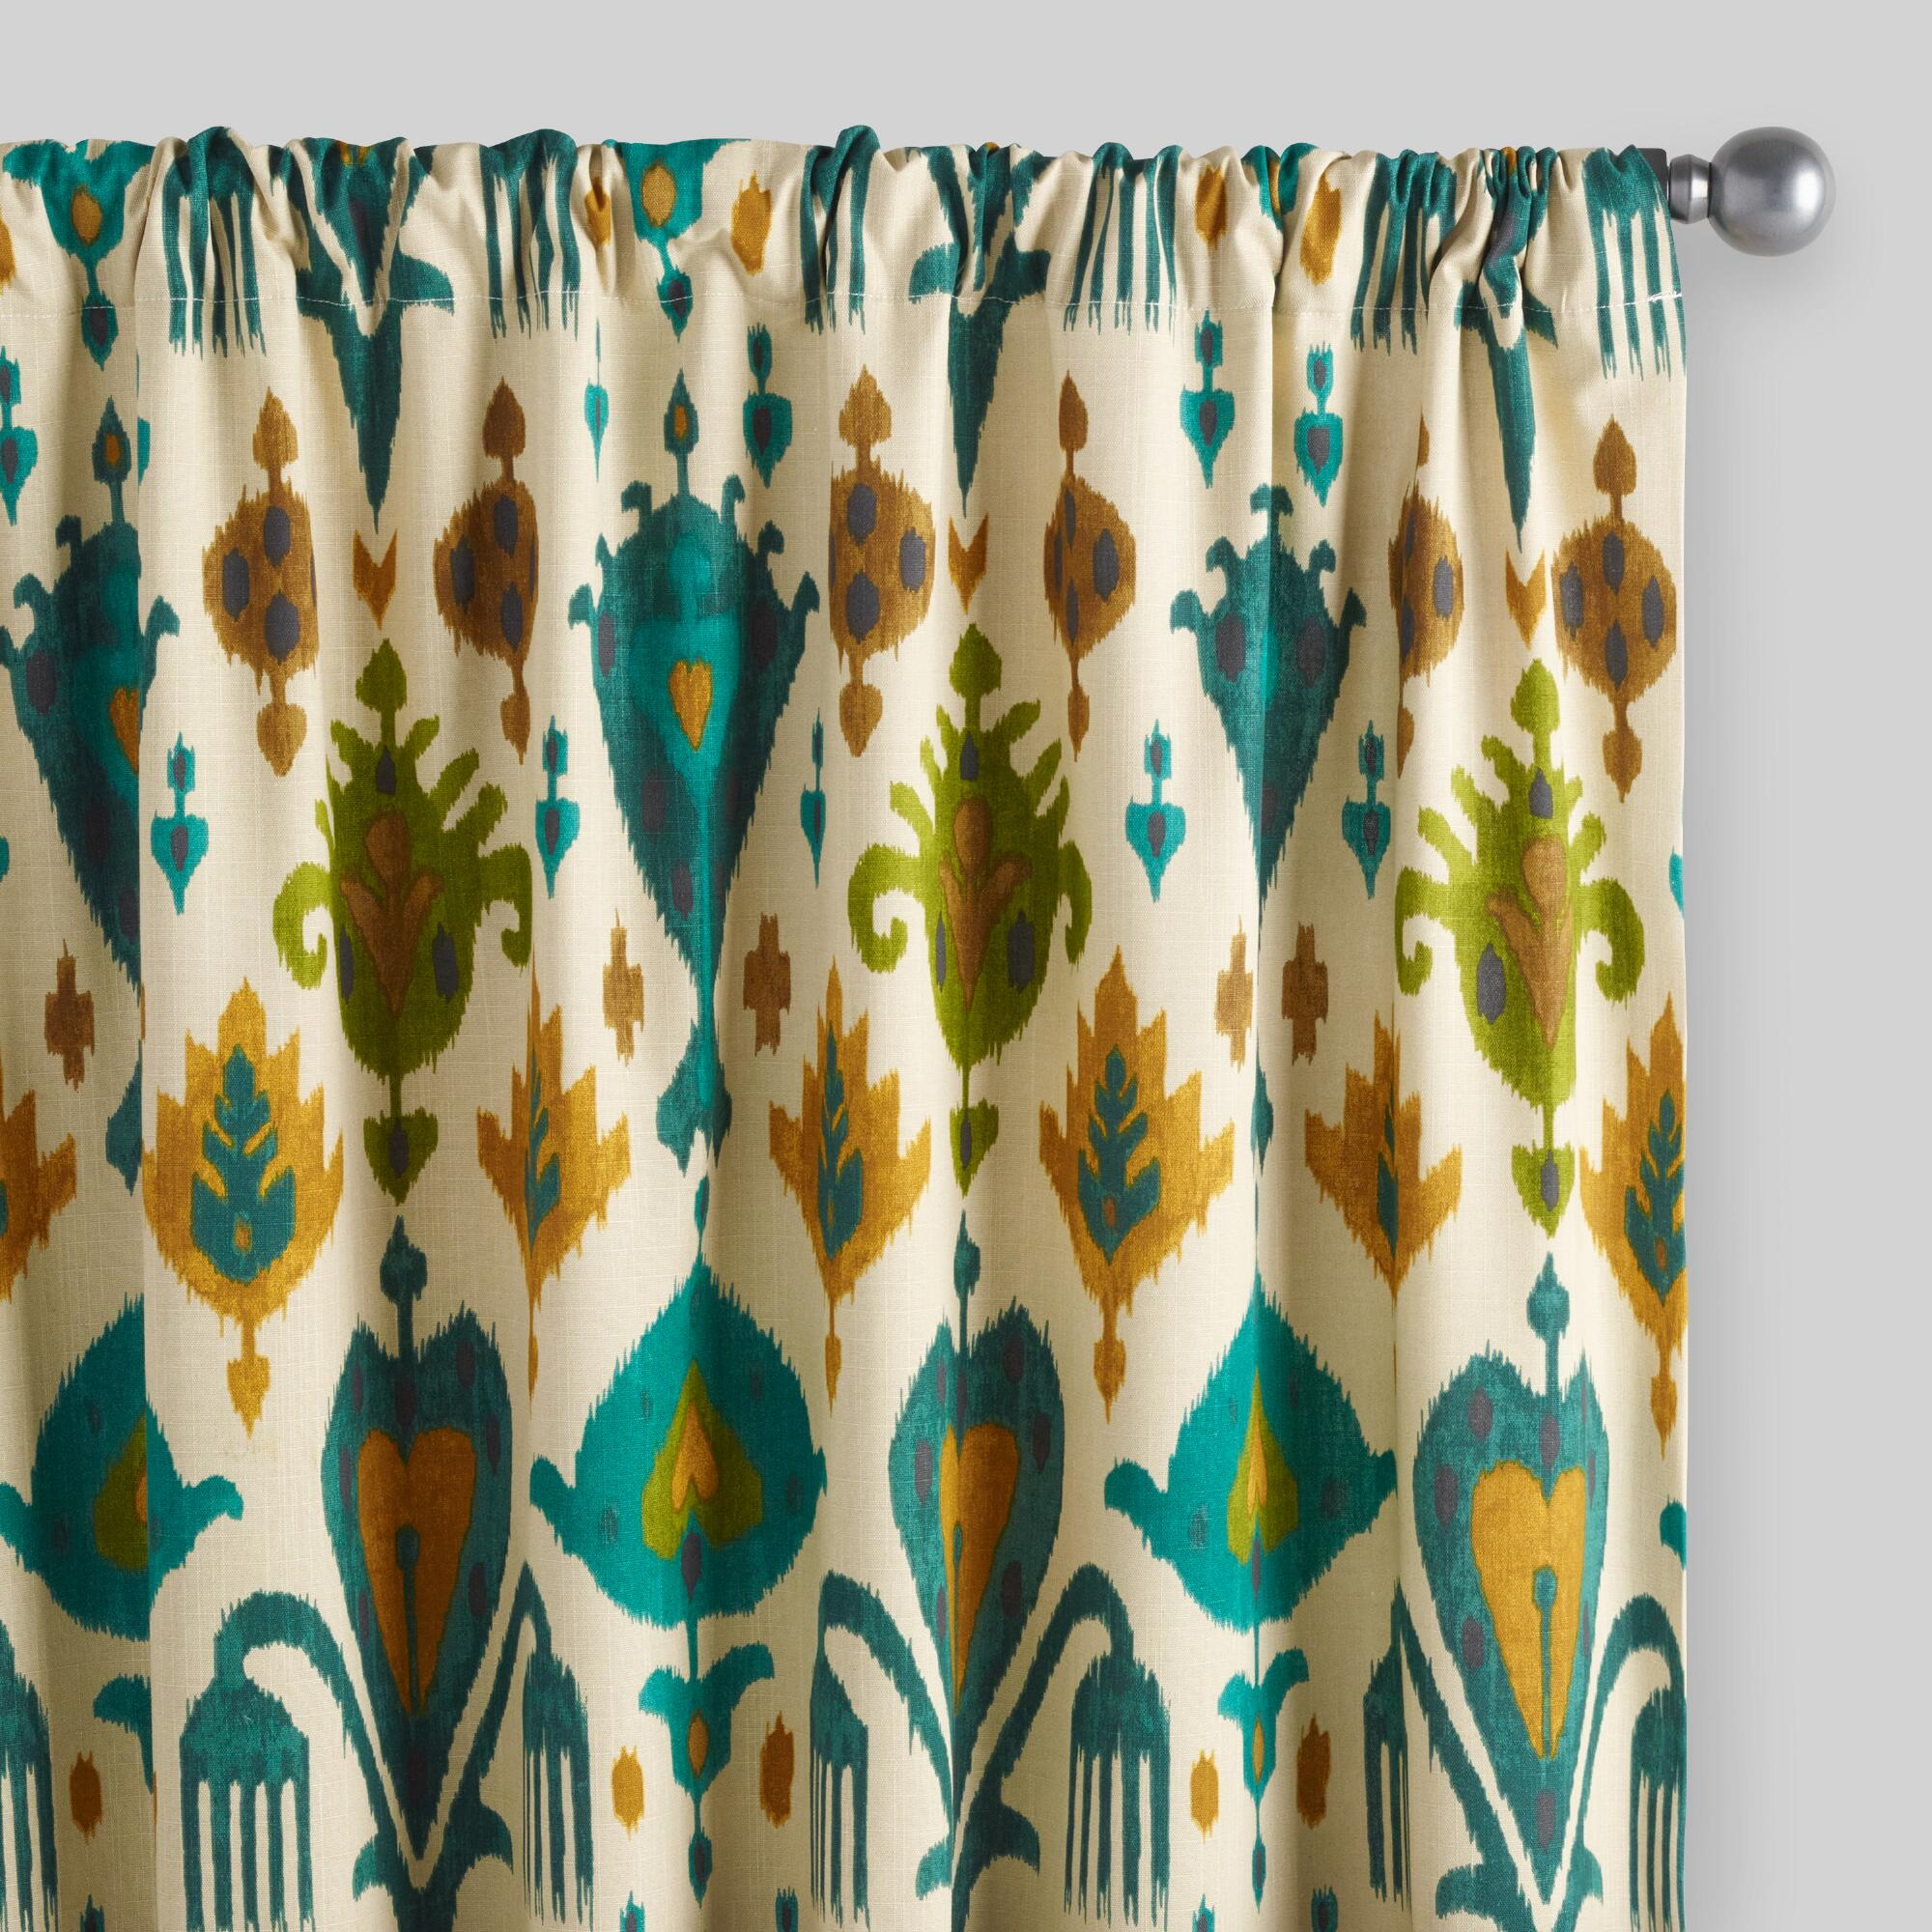 Christmas shower curtains on ebay - Gold And Teal Ikat Aberdeen Cotton Curtains Set Of 2